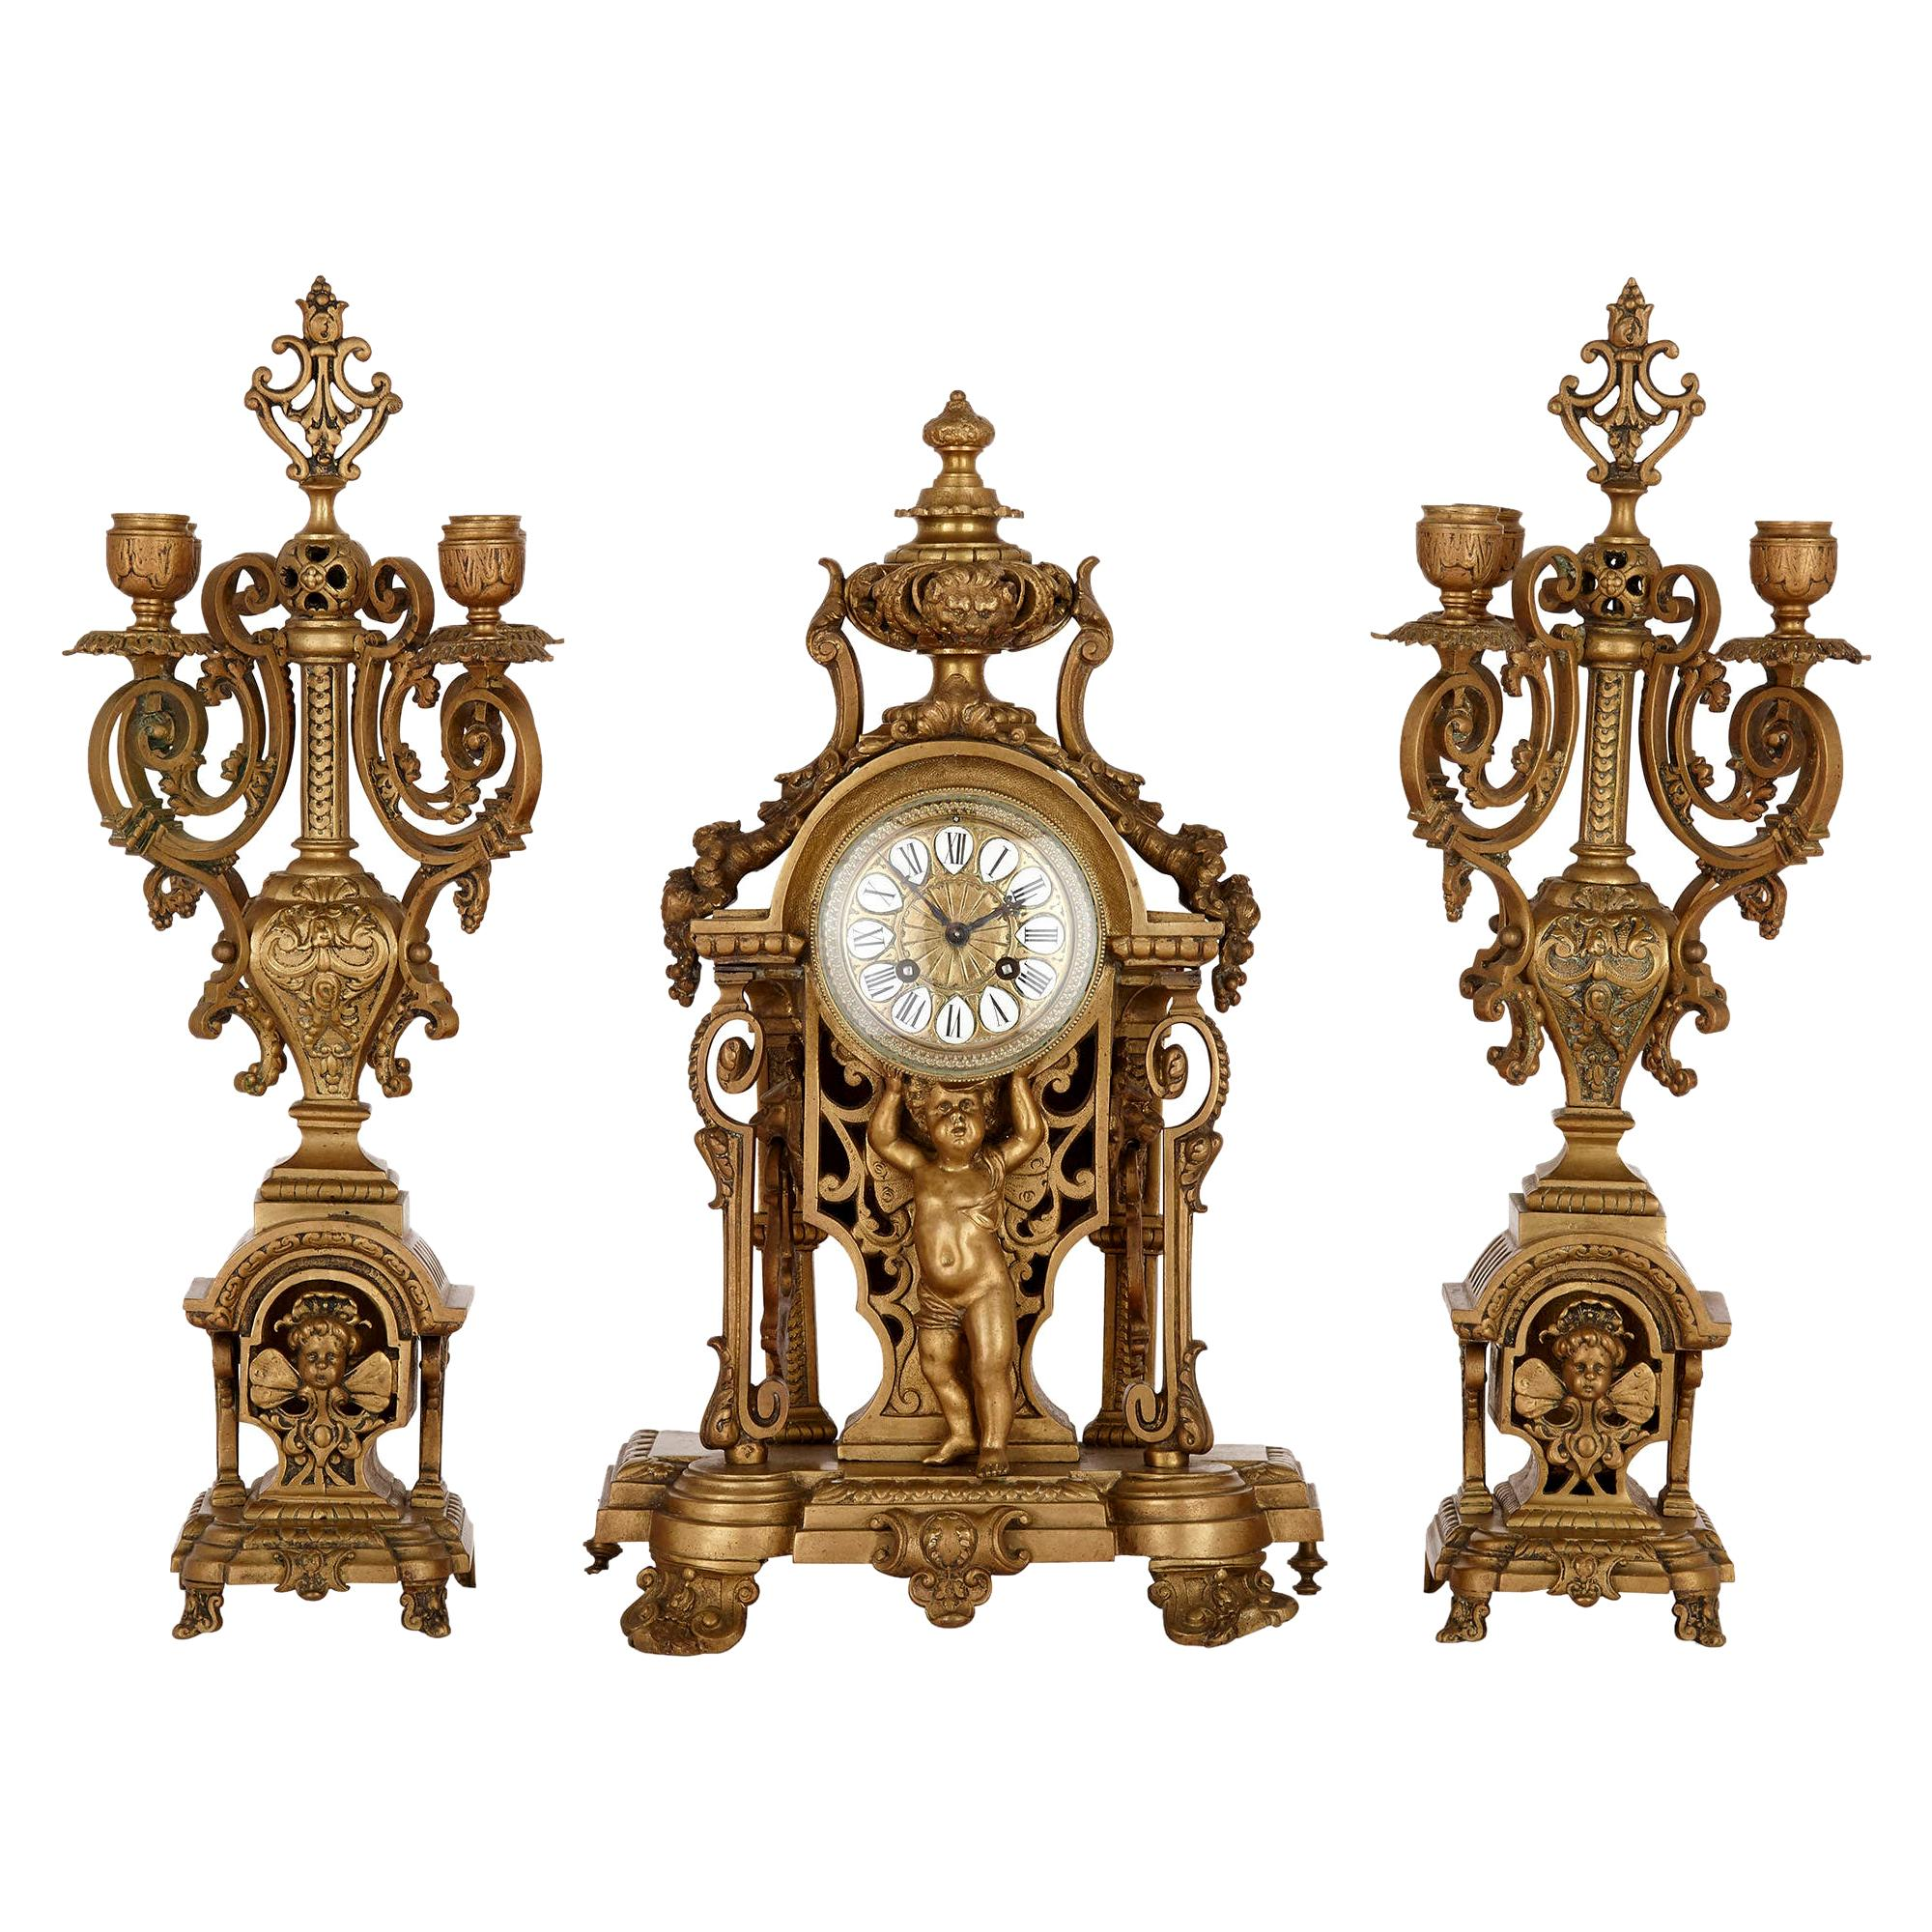 Antique Gilt Bronze Three-Piece Clock Garniture